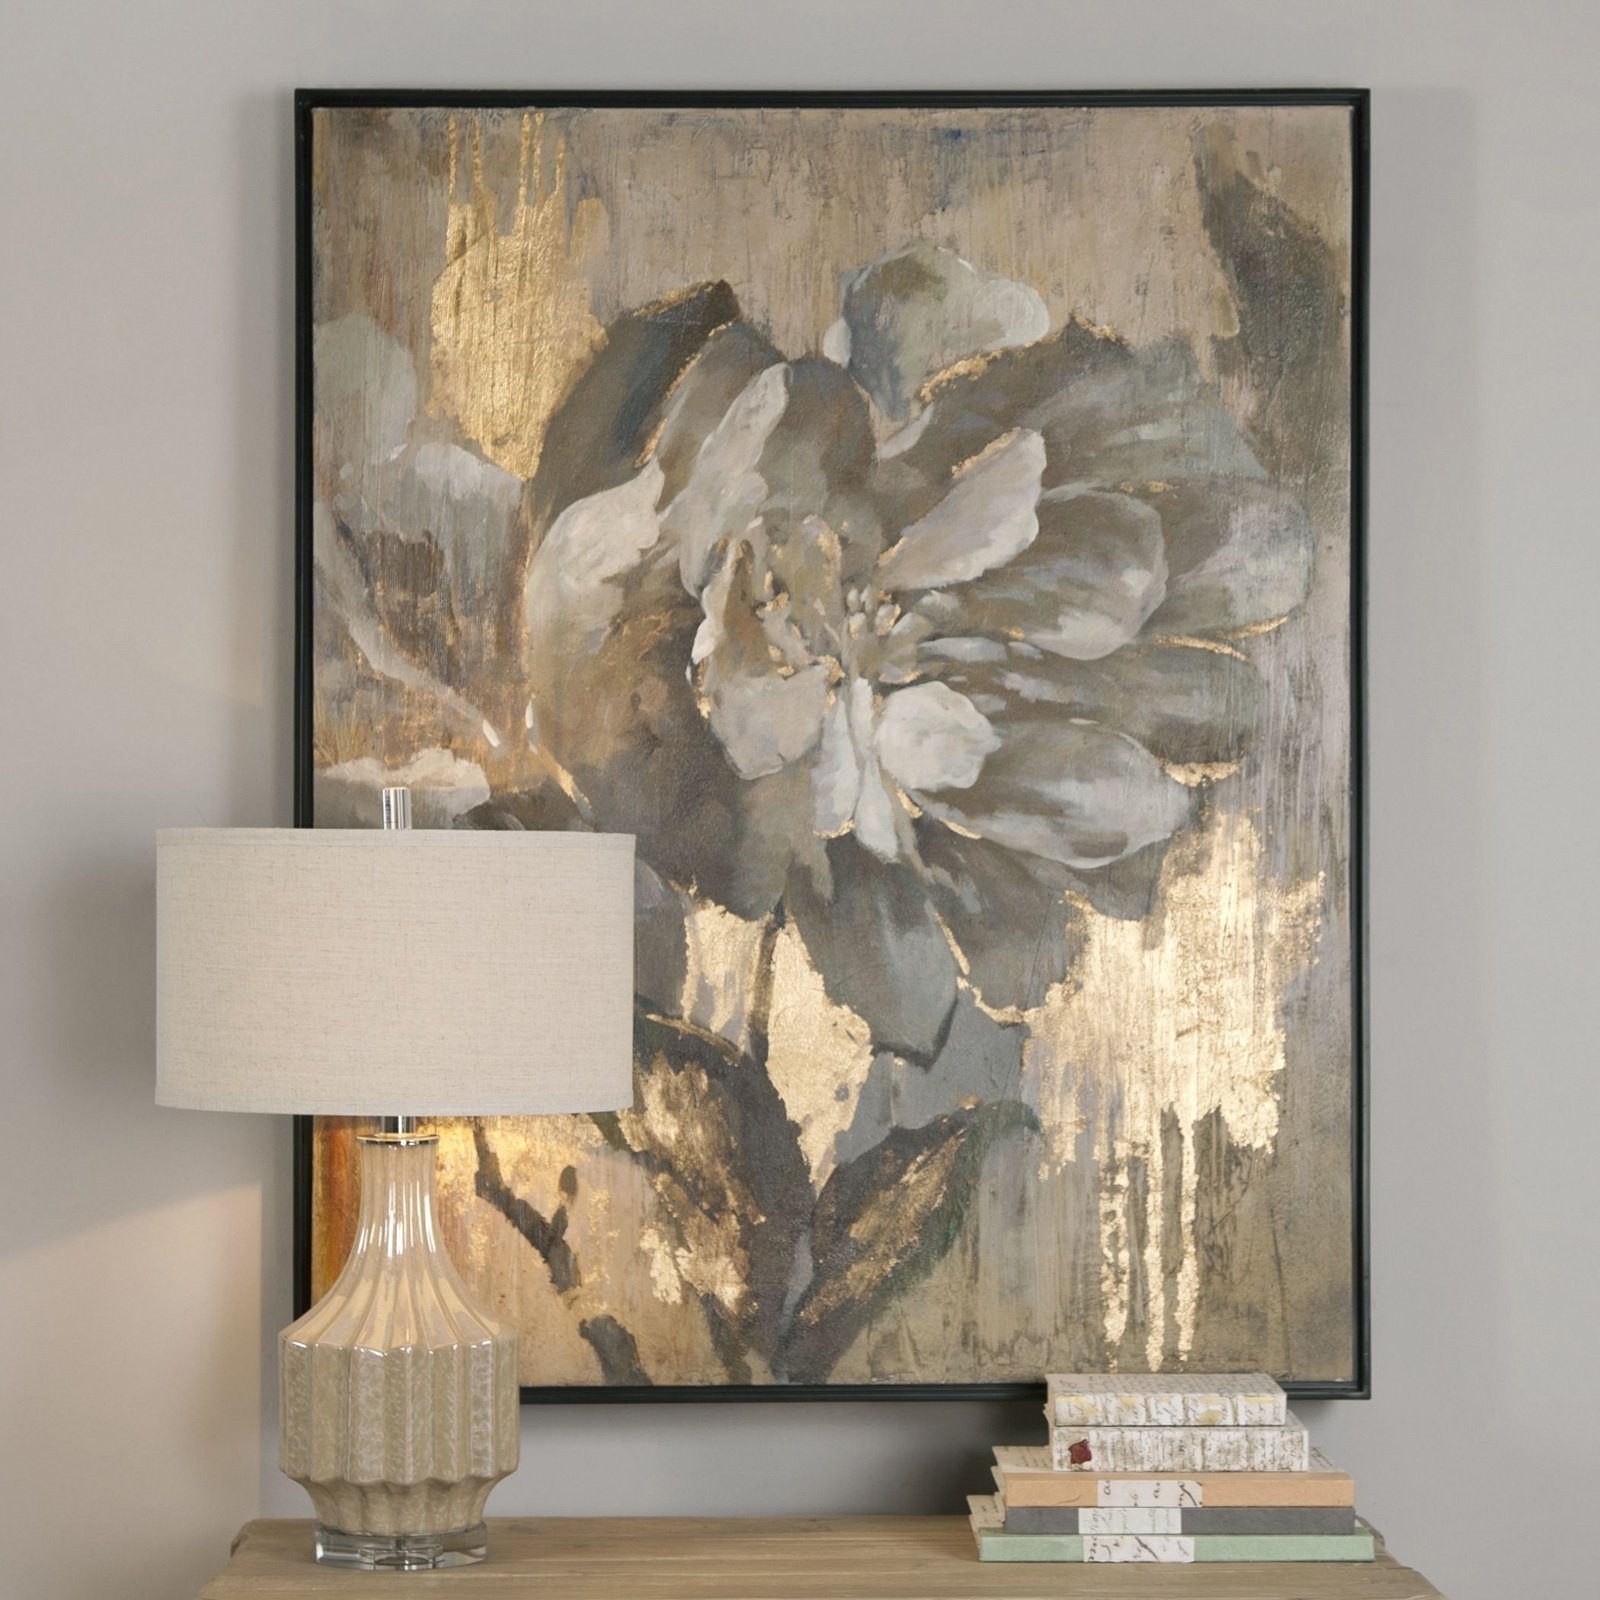 Uttermost Dazzling Floral Wall Art | Hayneedle For Most Up To Date Uttermost Wall Art (View 8 of 20)